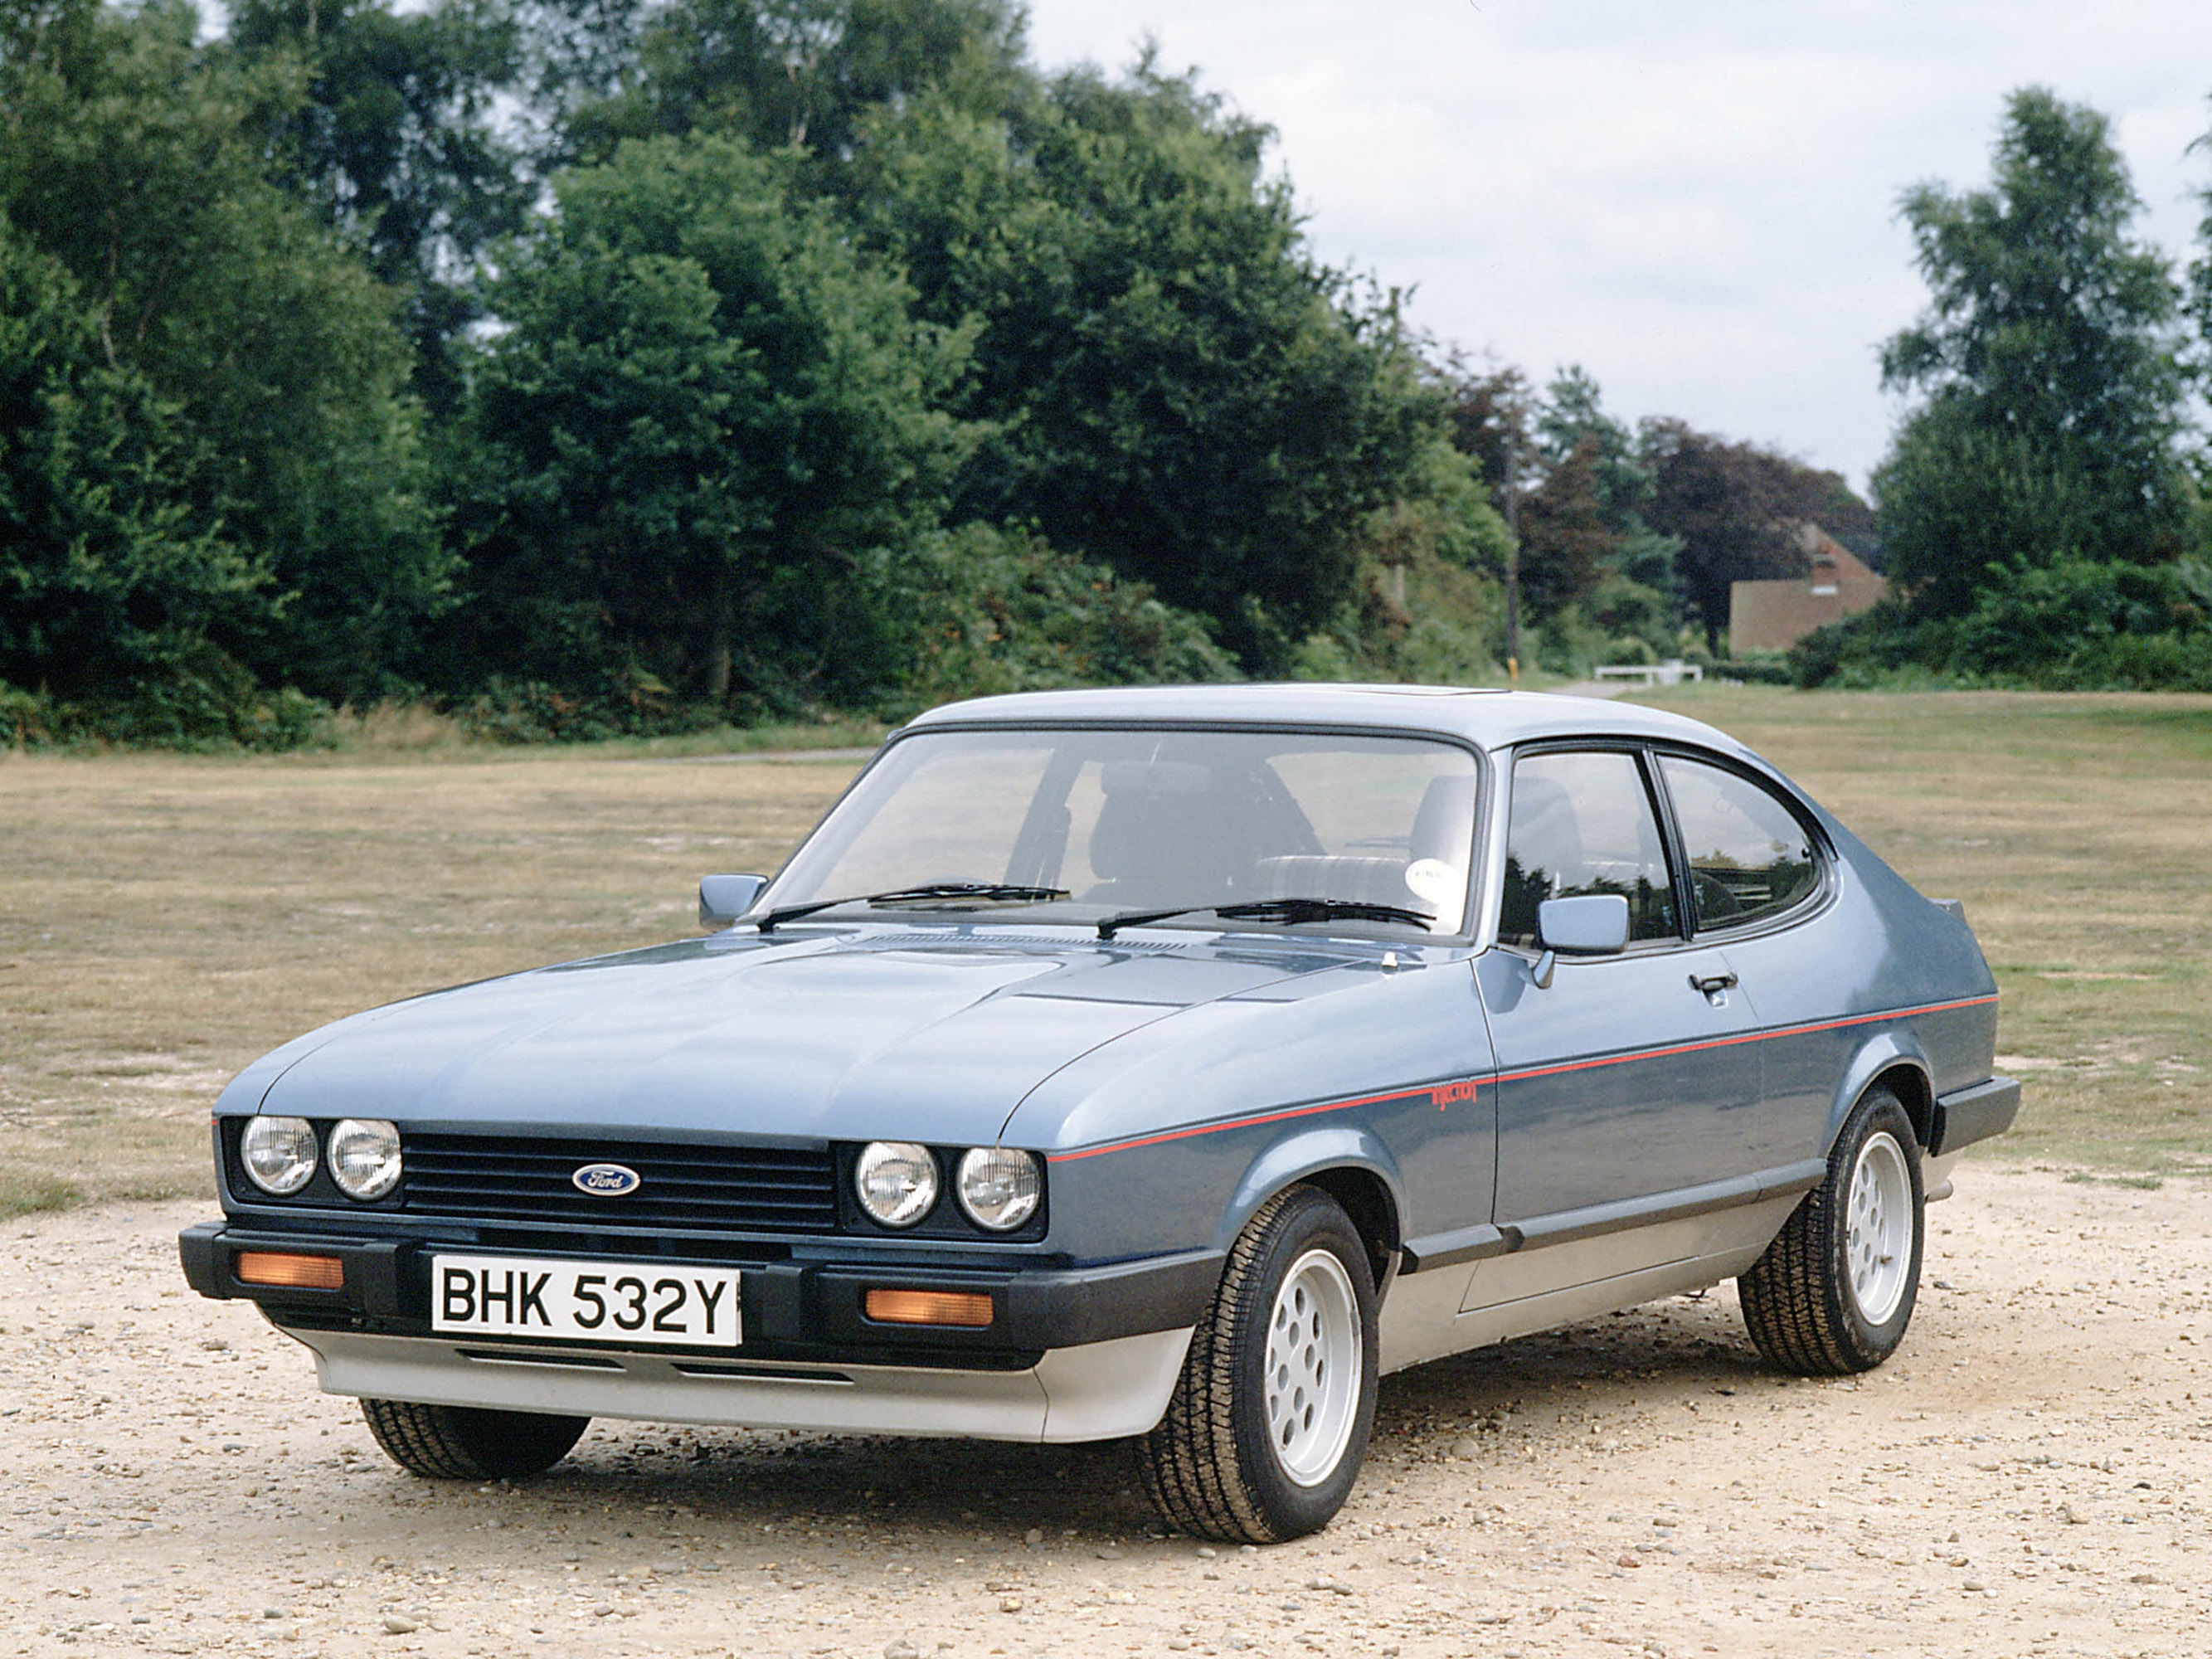 aston martin tickford capri images #13